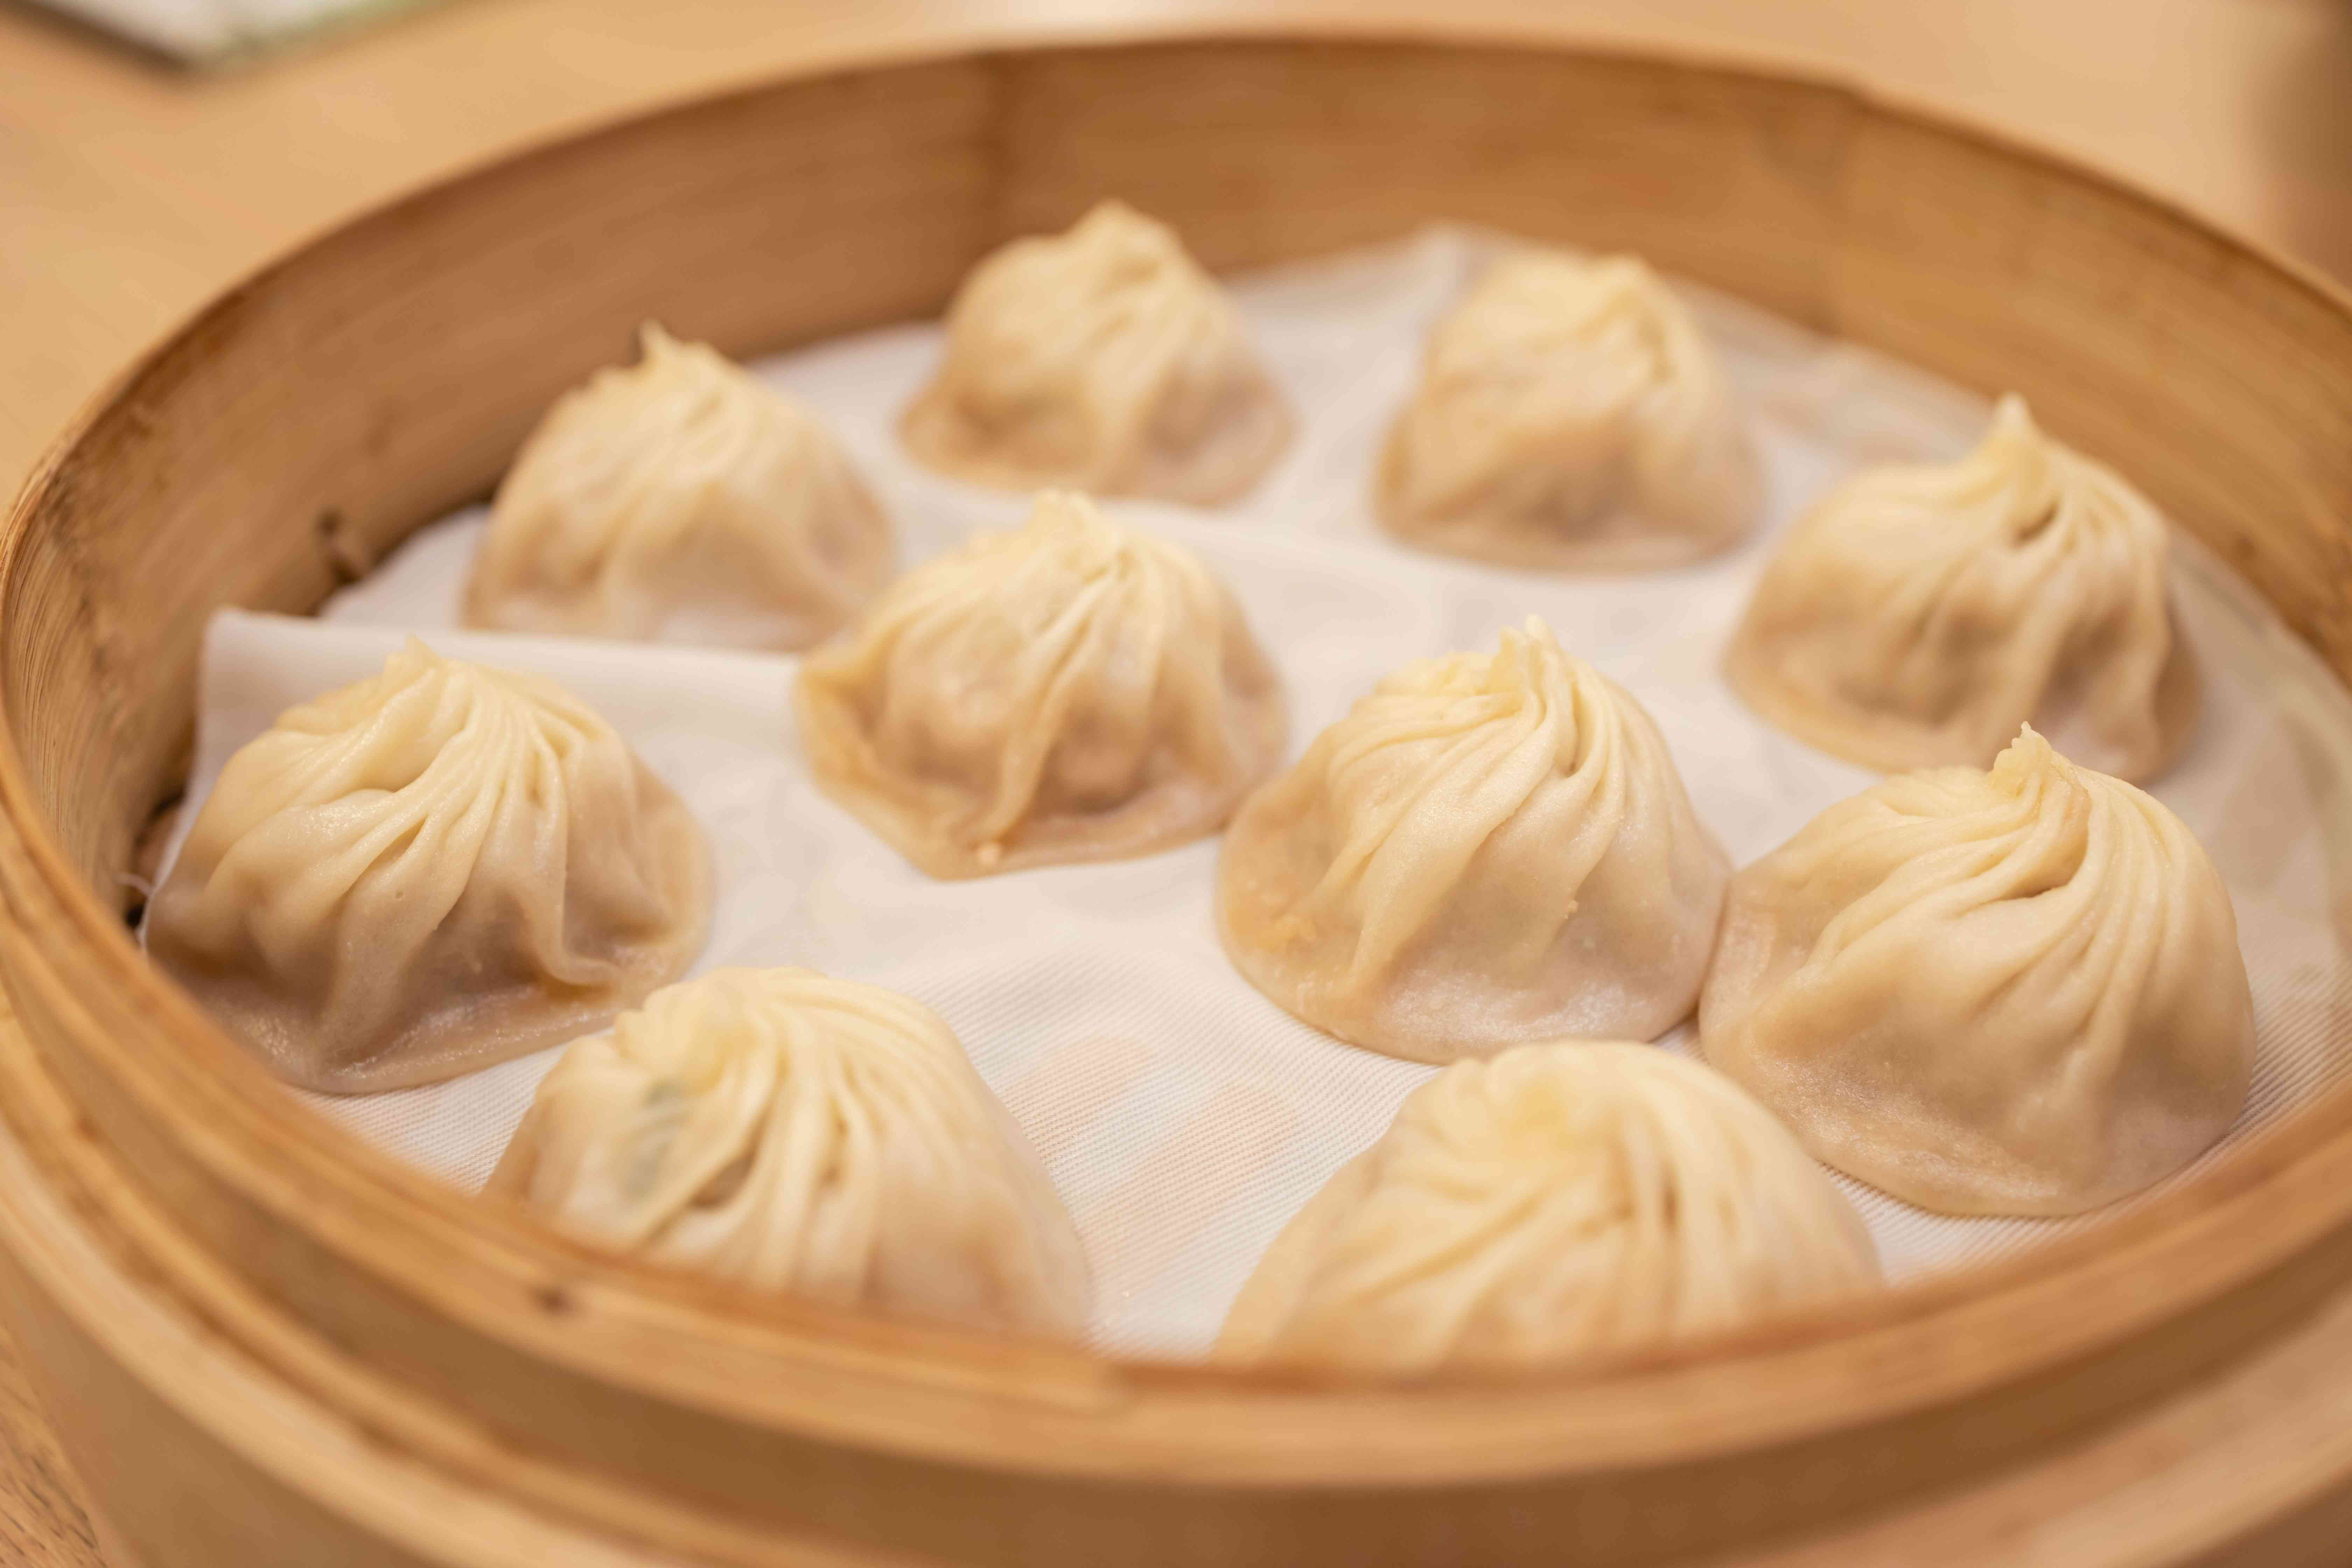 bamboo steamers with 10 soup dumplings in it